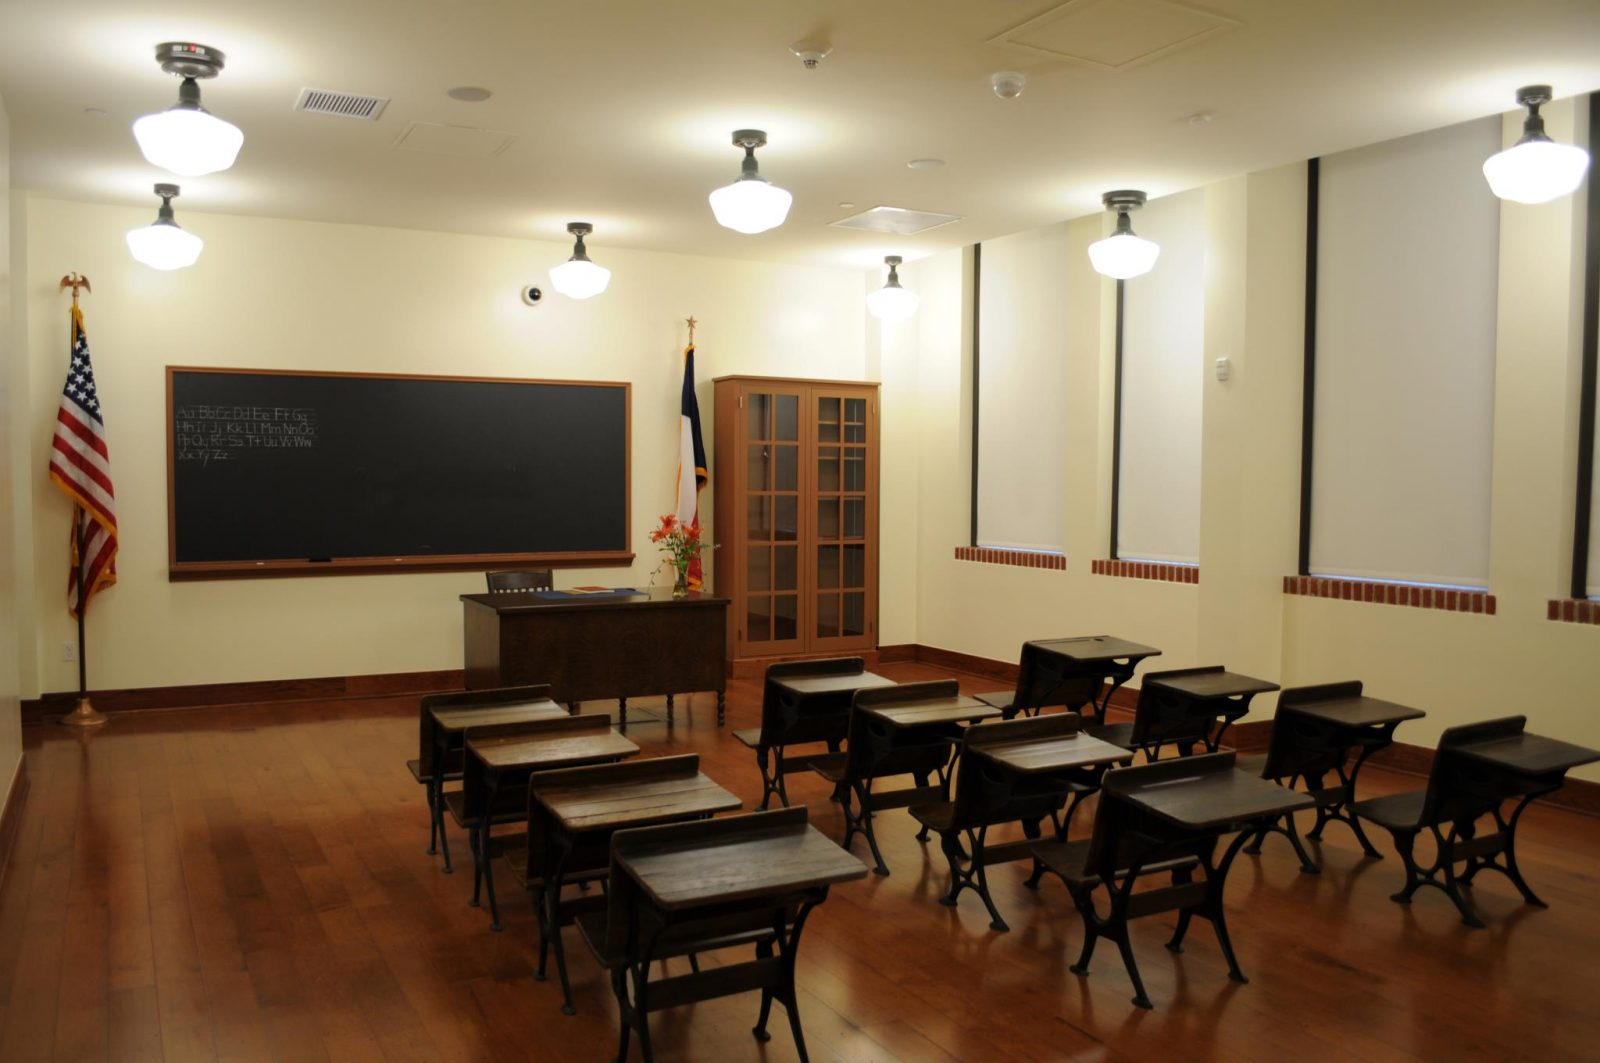 Classroom in the Library